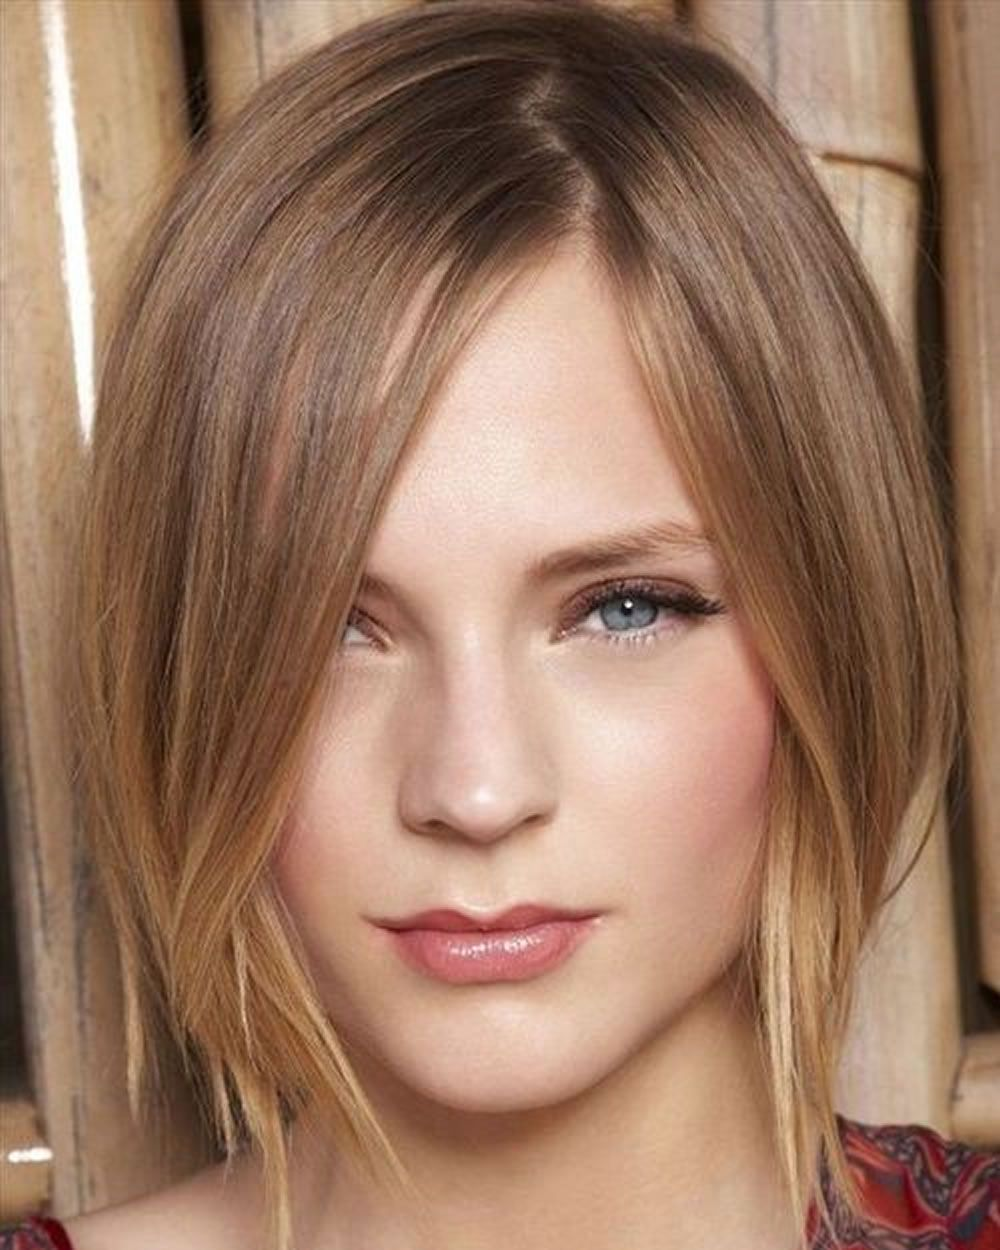 Chic Short Asymmetrical Haircut 2020 2021 Thin Hair Haircuts Hairstyles For Thin Hair Hair Styles